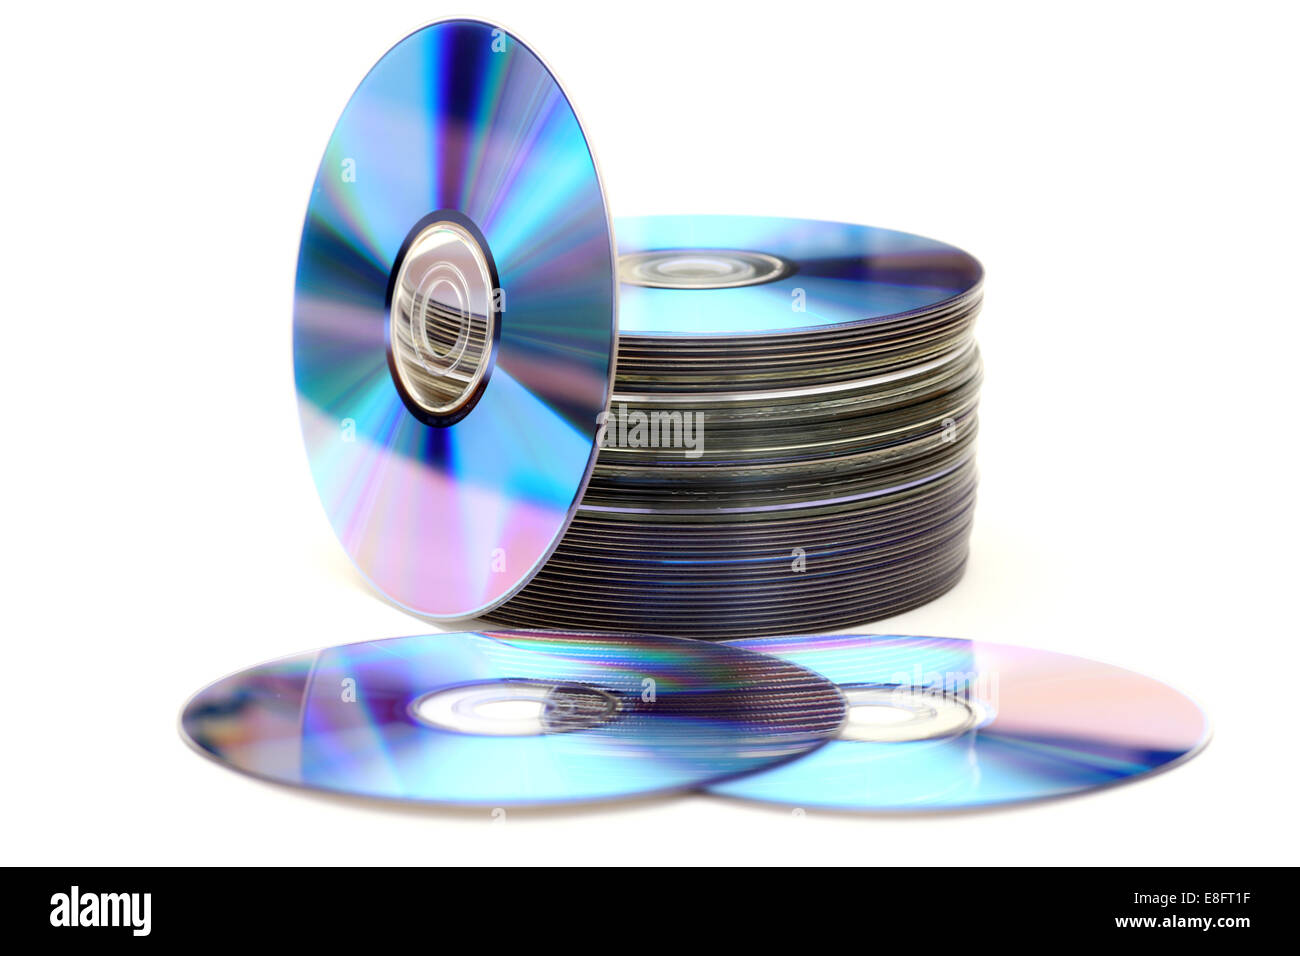 DVD or Blu-ray disc heap against white background. - Stock Image